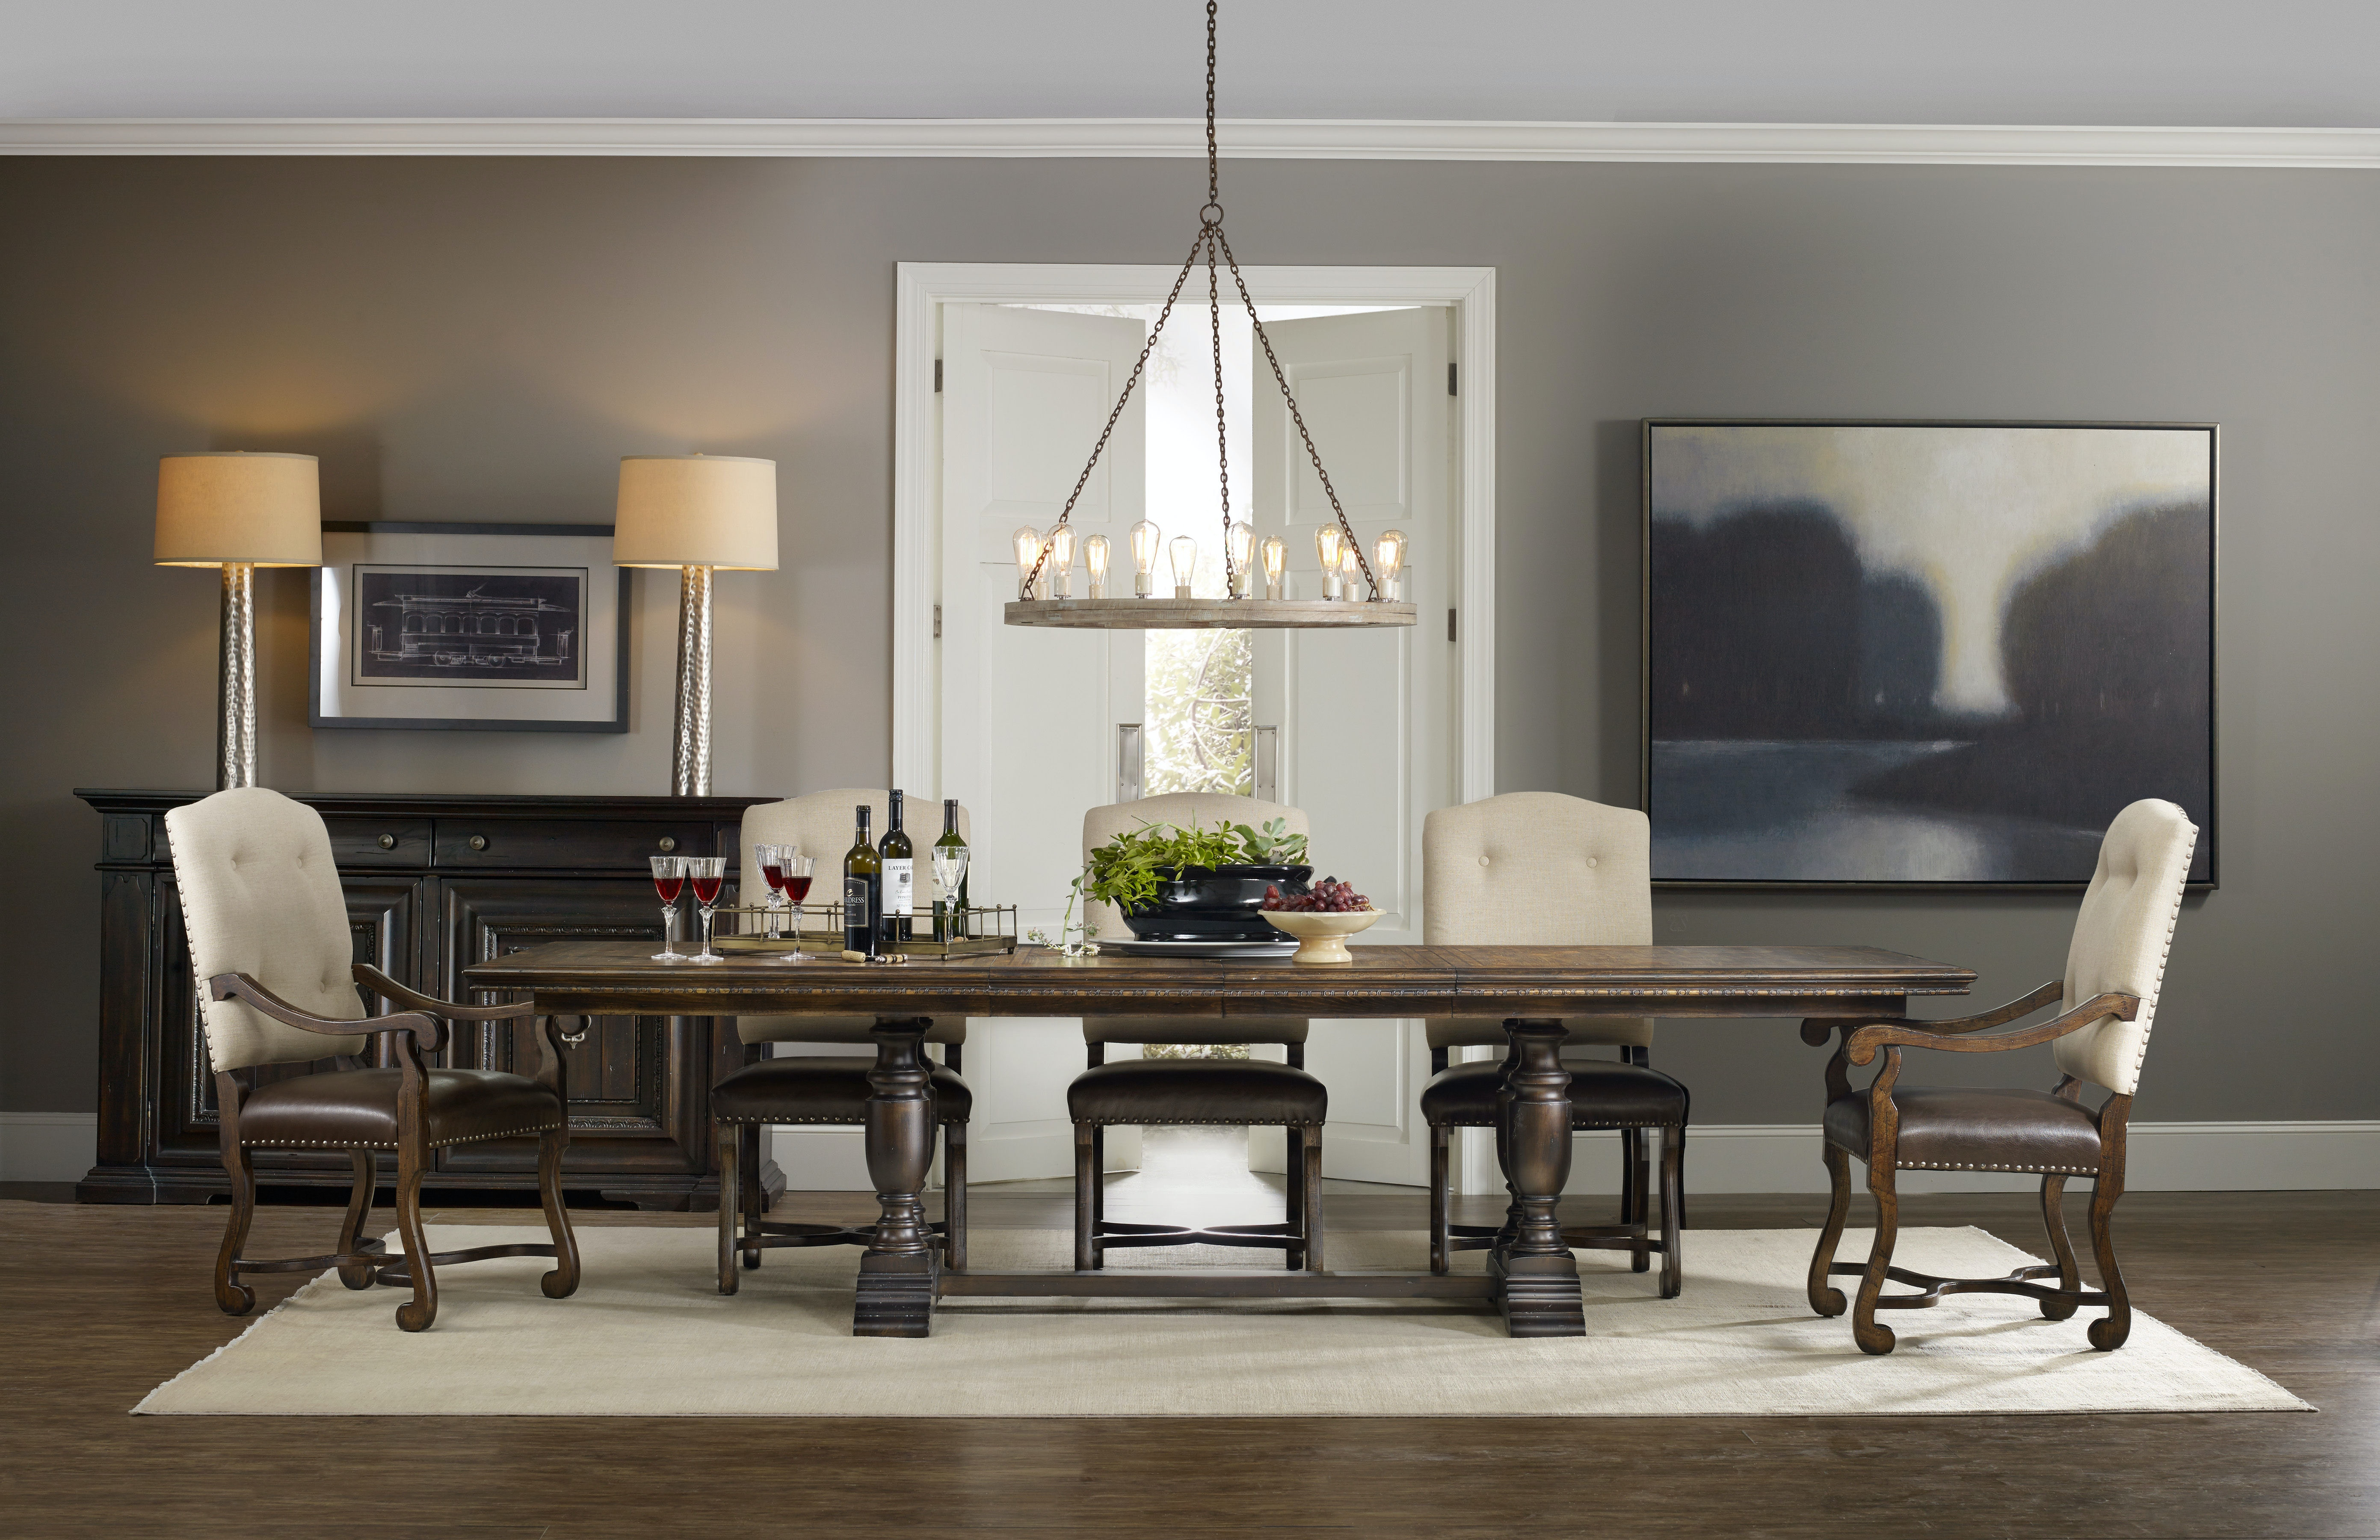 Hooker Furniture Dining Room Treviso Trestle Dining Table with Two